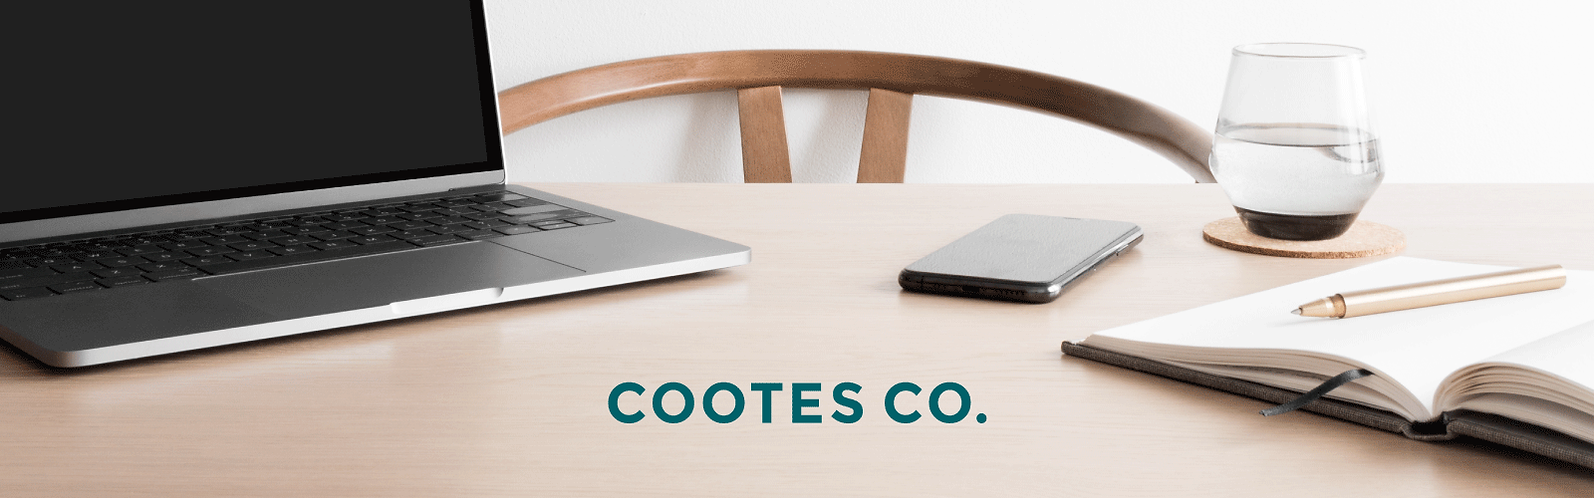 cootes co brand identity